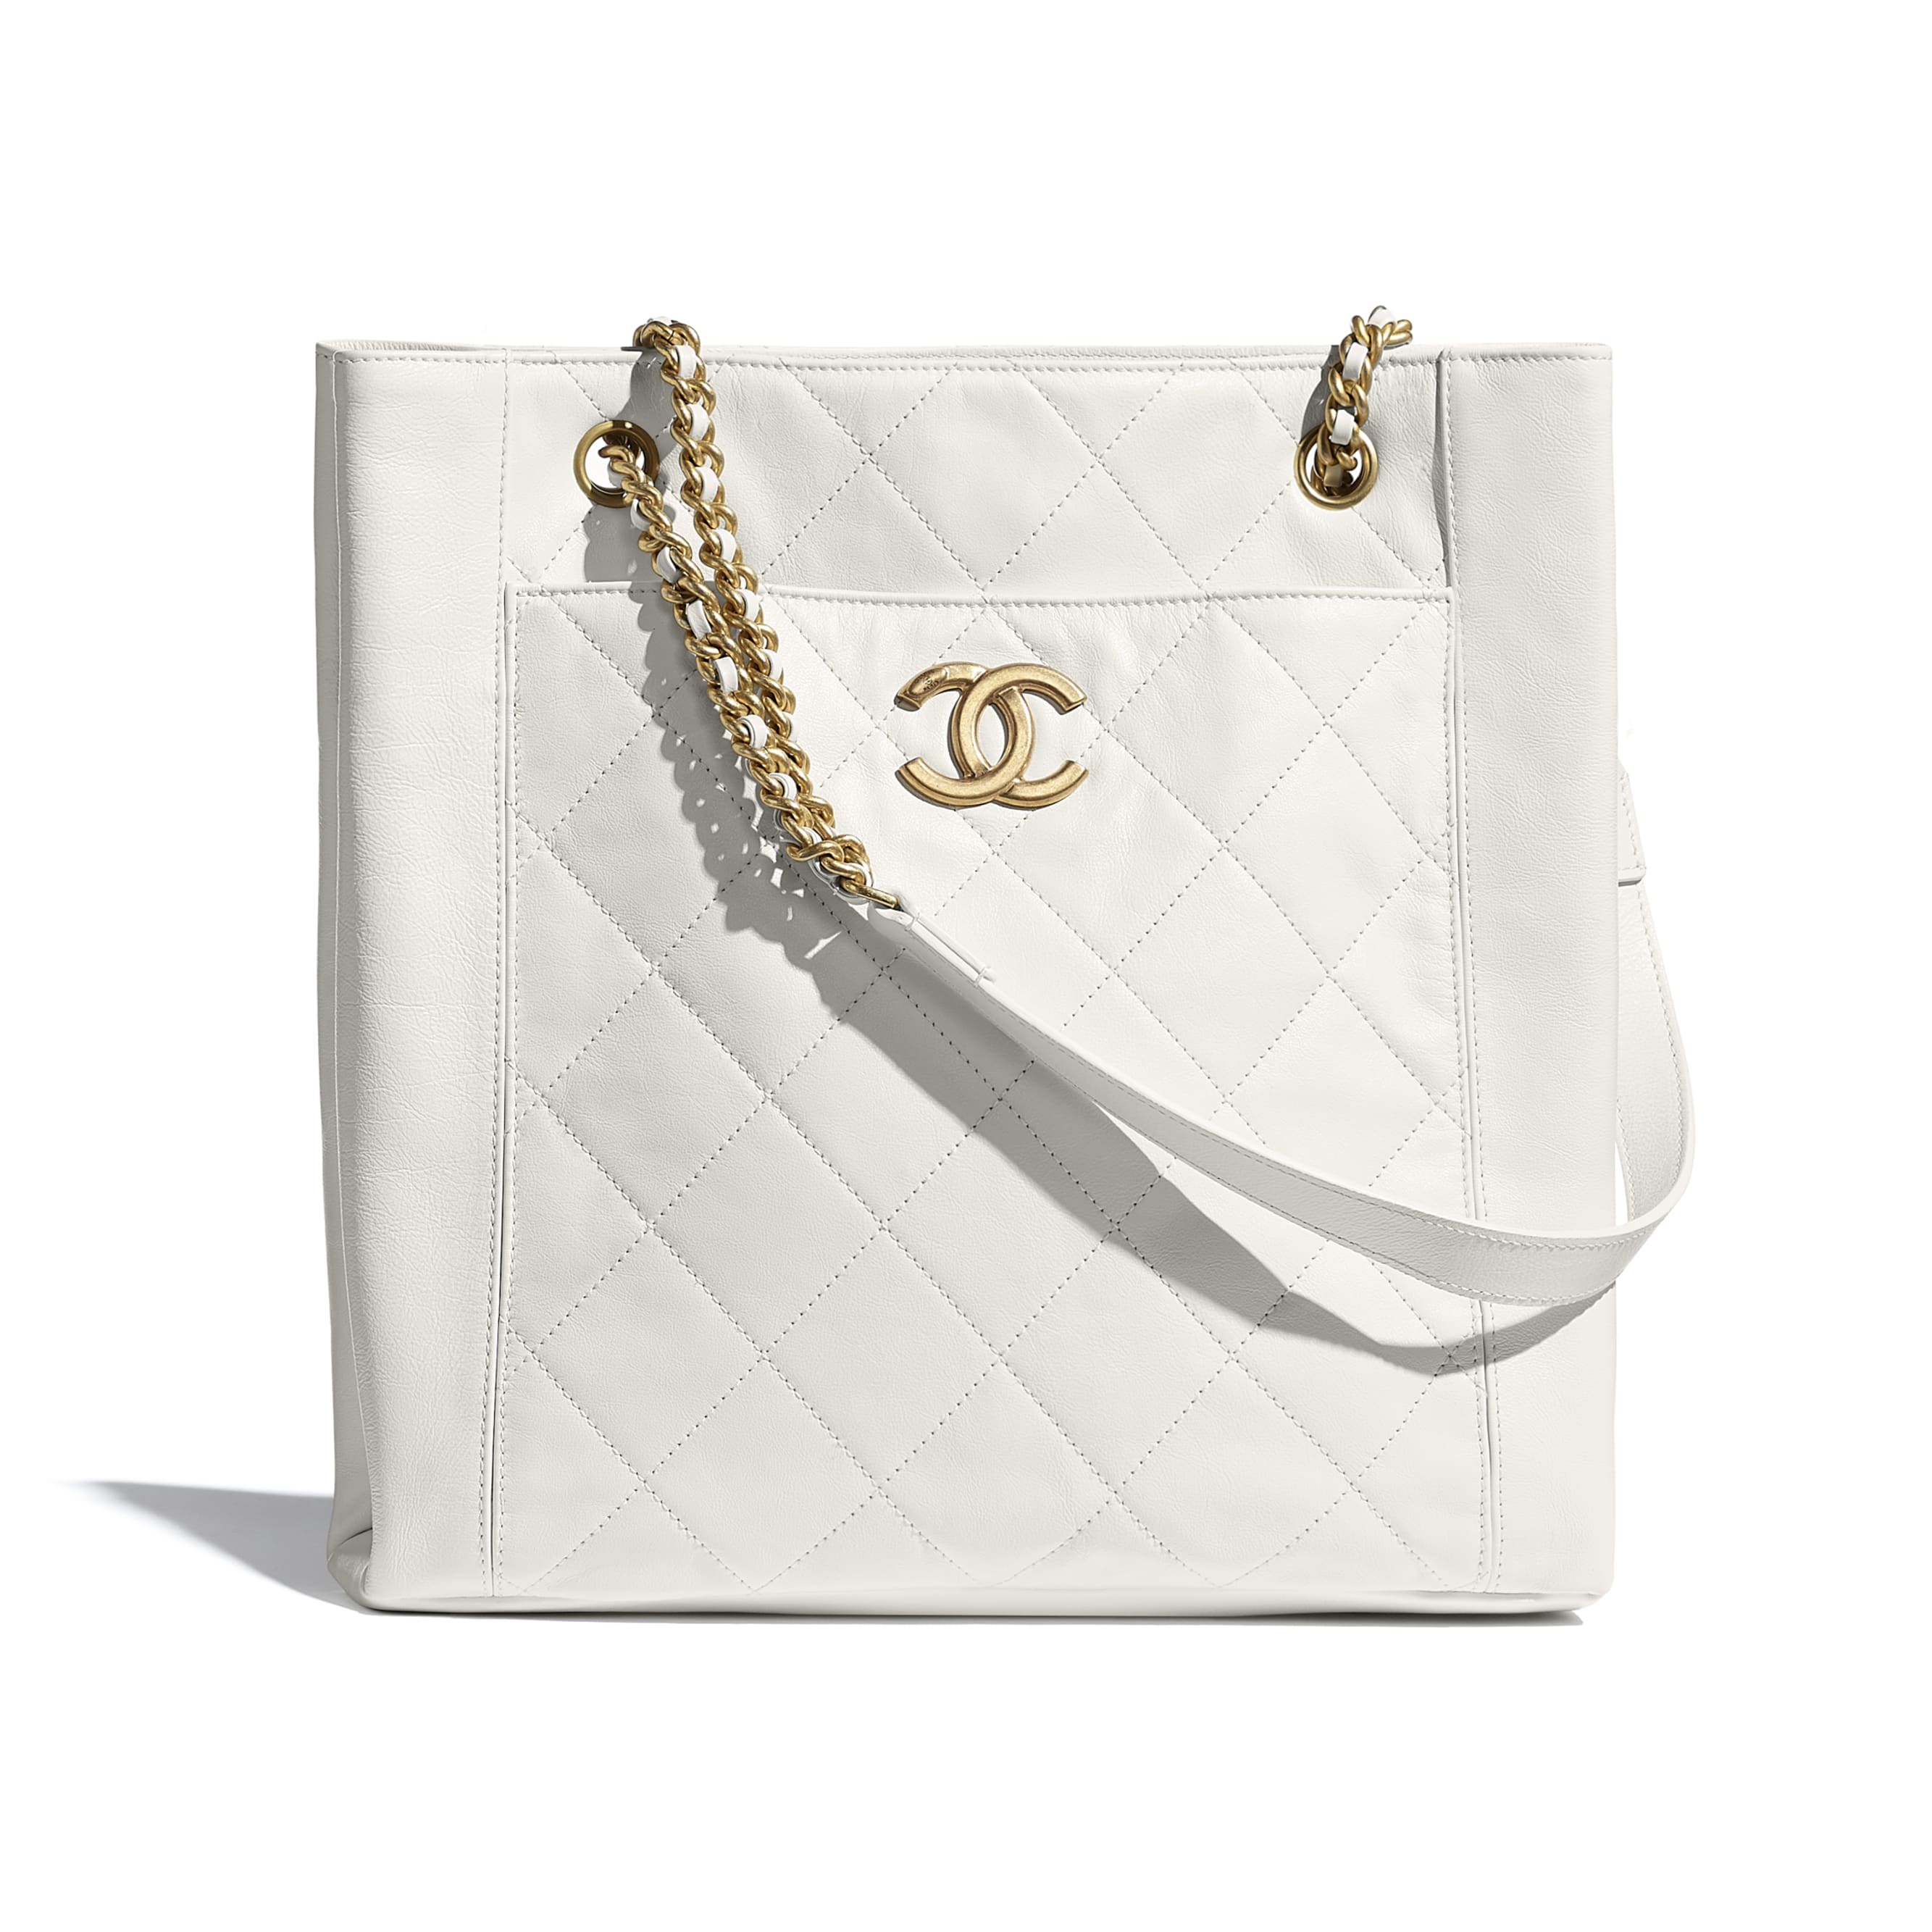 Small Tote - White - Calfskin & Gold-Tone Metal - CHANEL - Default view - see standard sized version